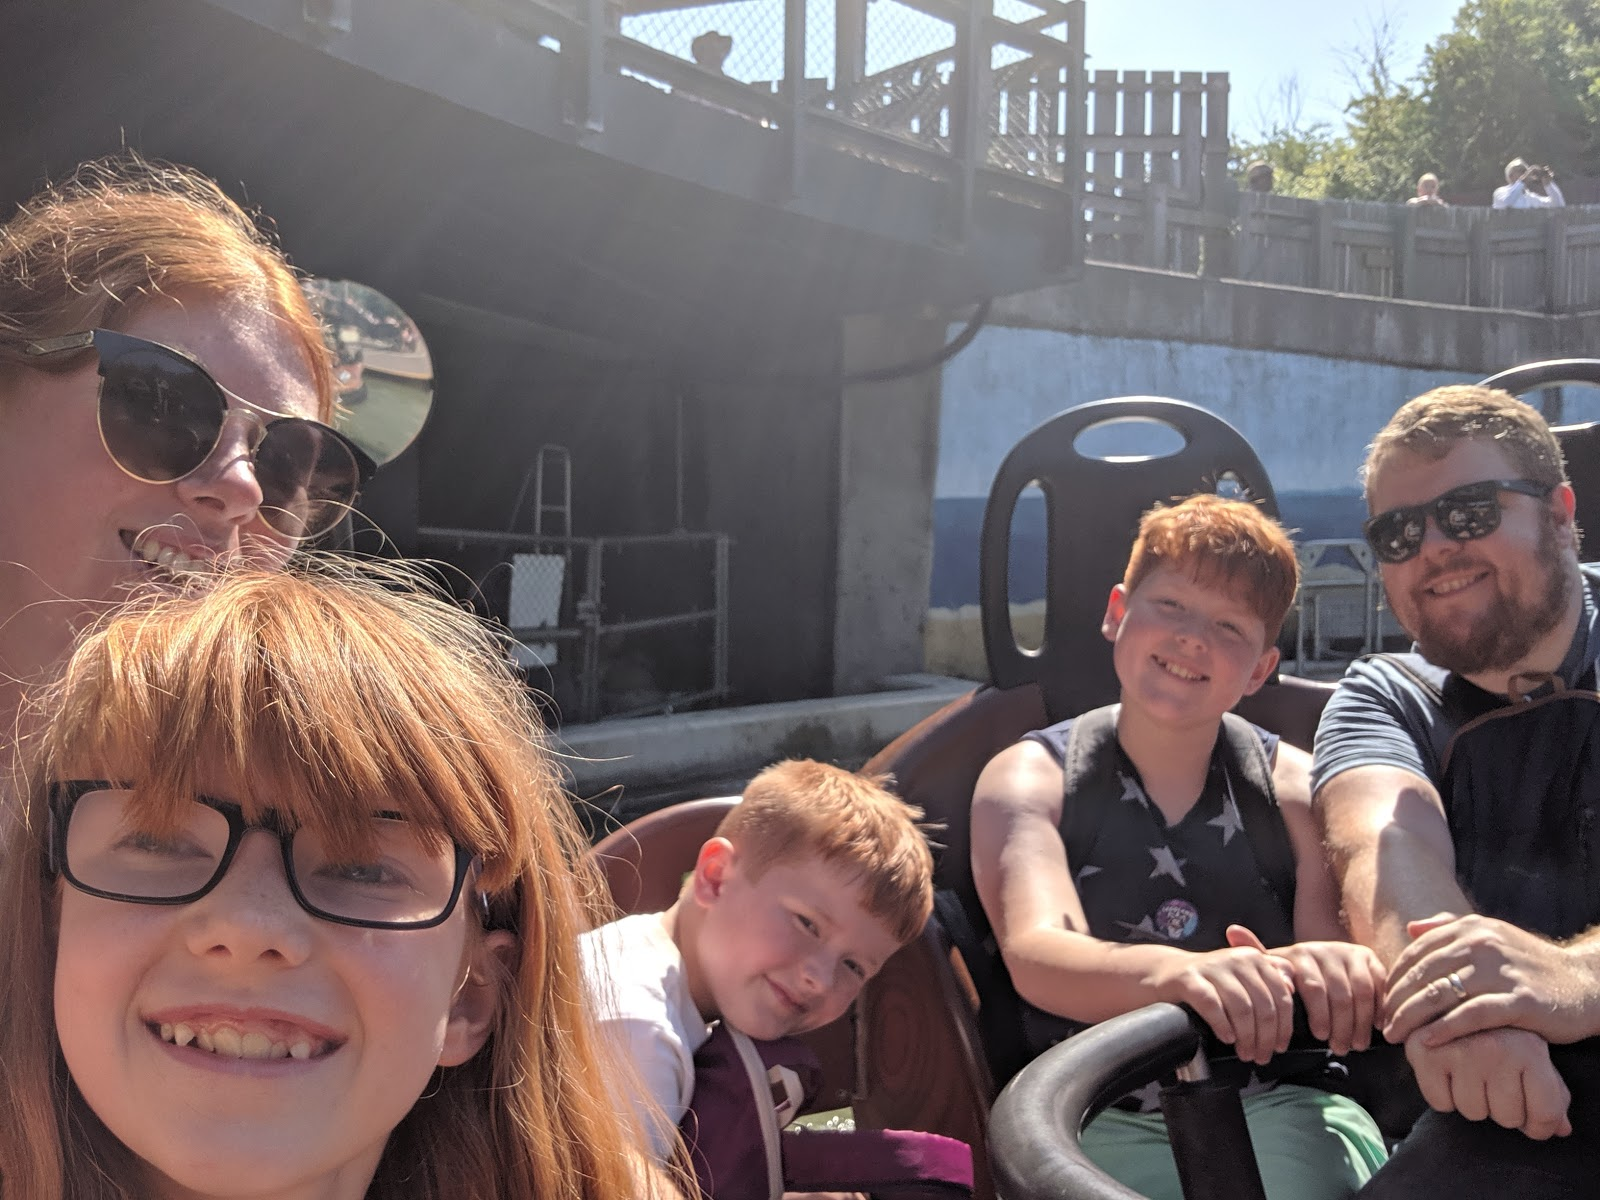 Exploring the Southern Merlin Theme Parks with Tweens  - Viking Water Ride LEGOLAND